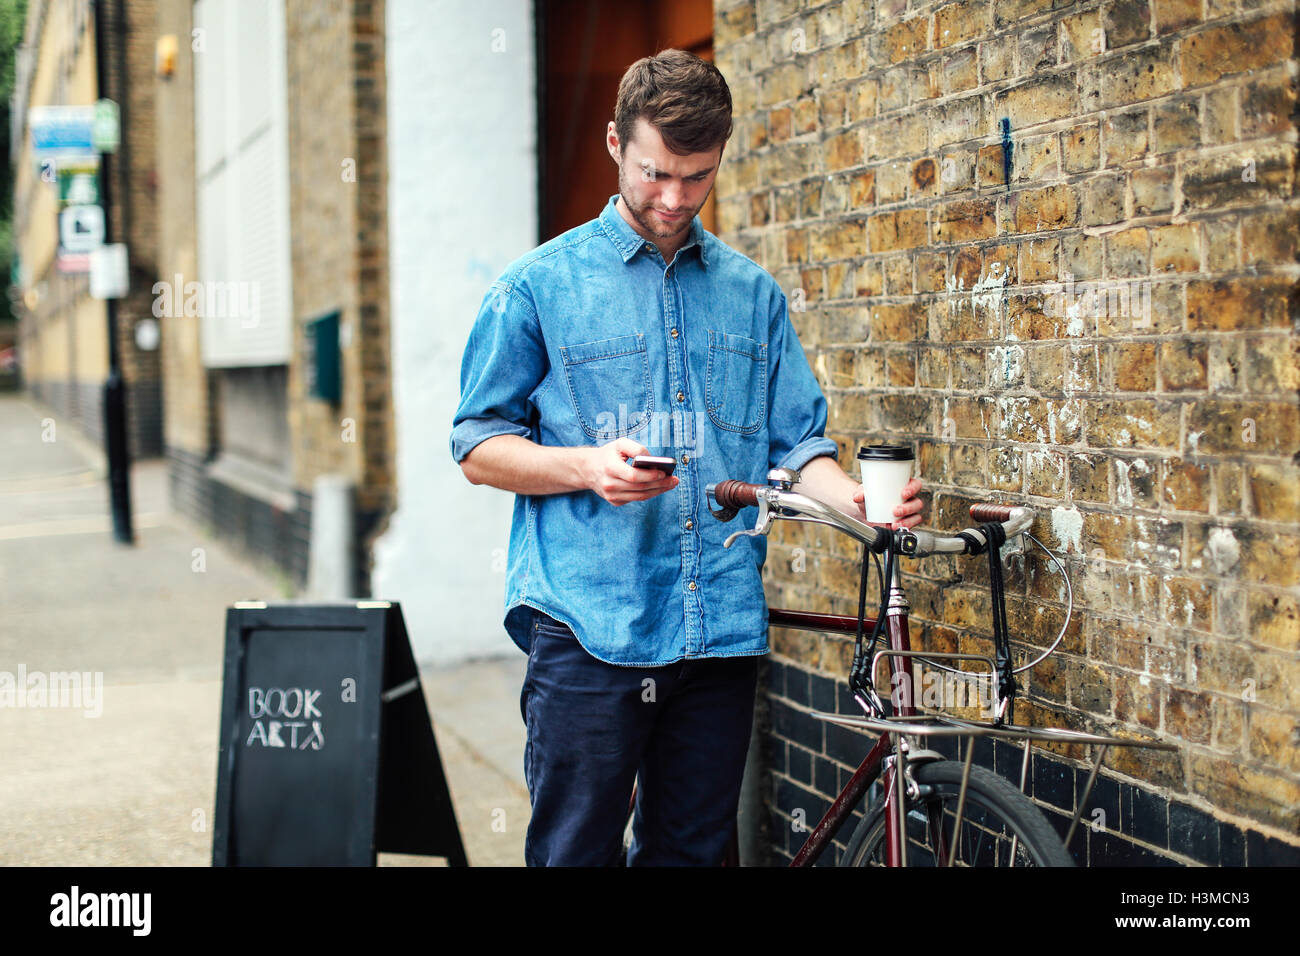 Young man holding coffee and checking mobile phone, with push bike leant against brick wall - Stock Image